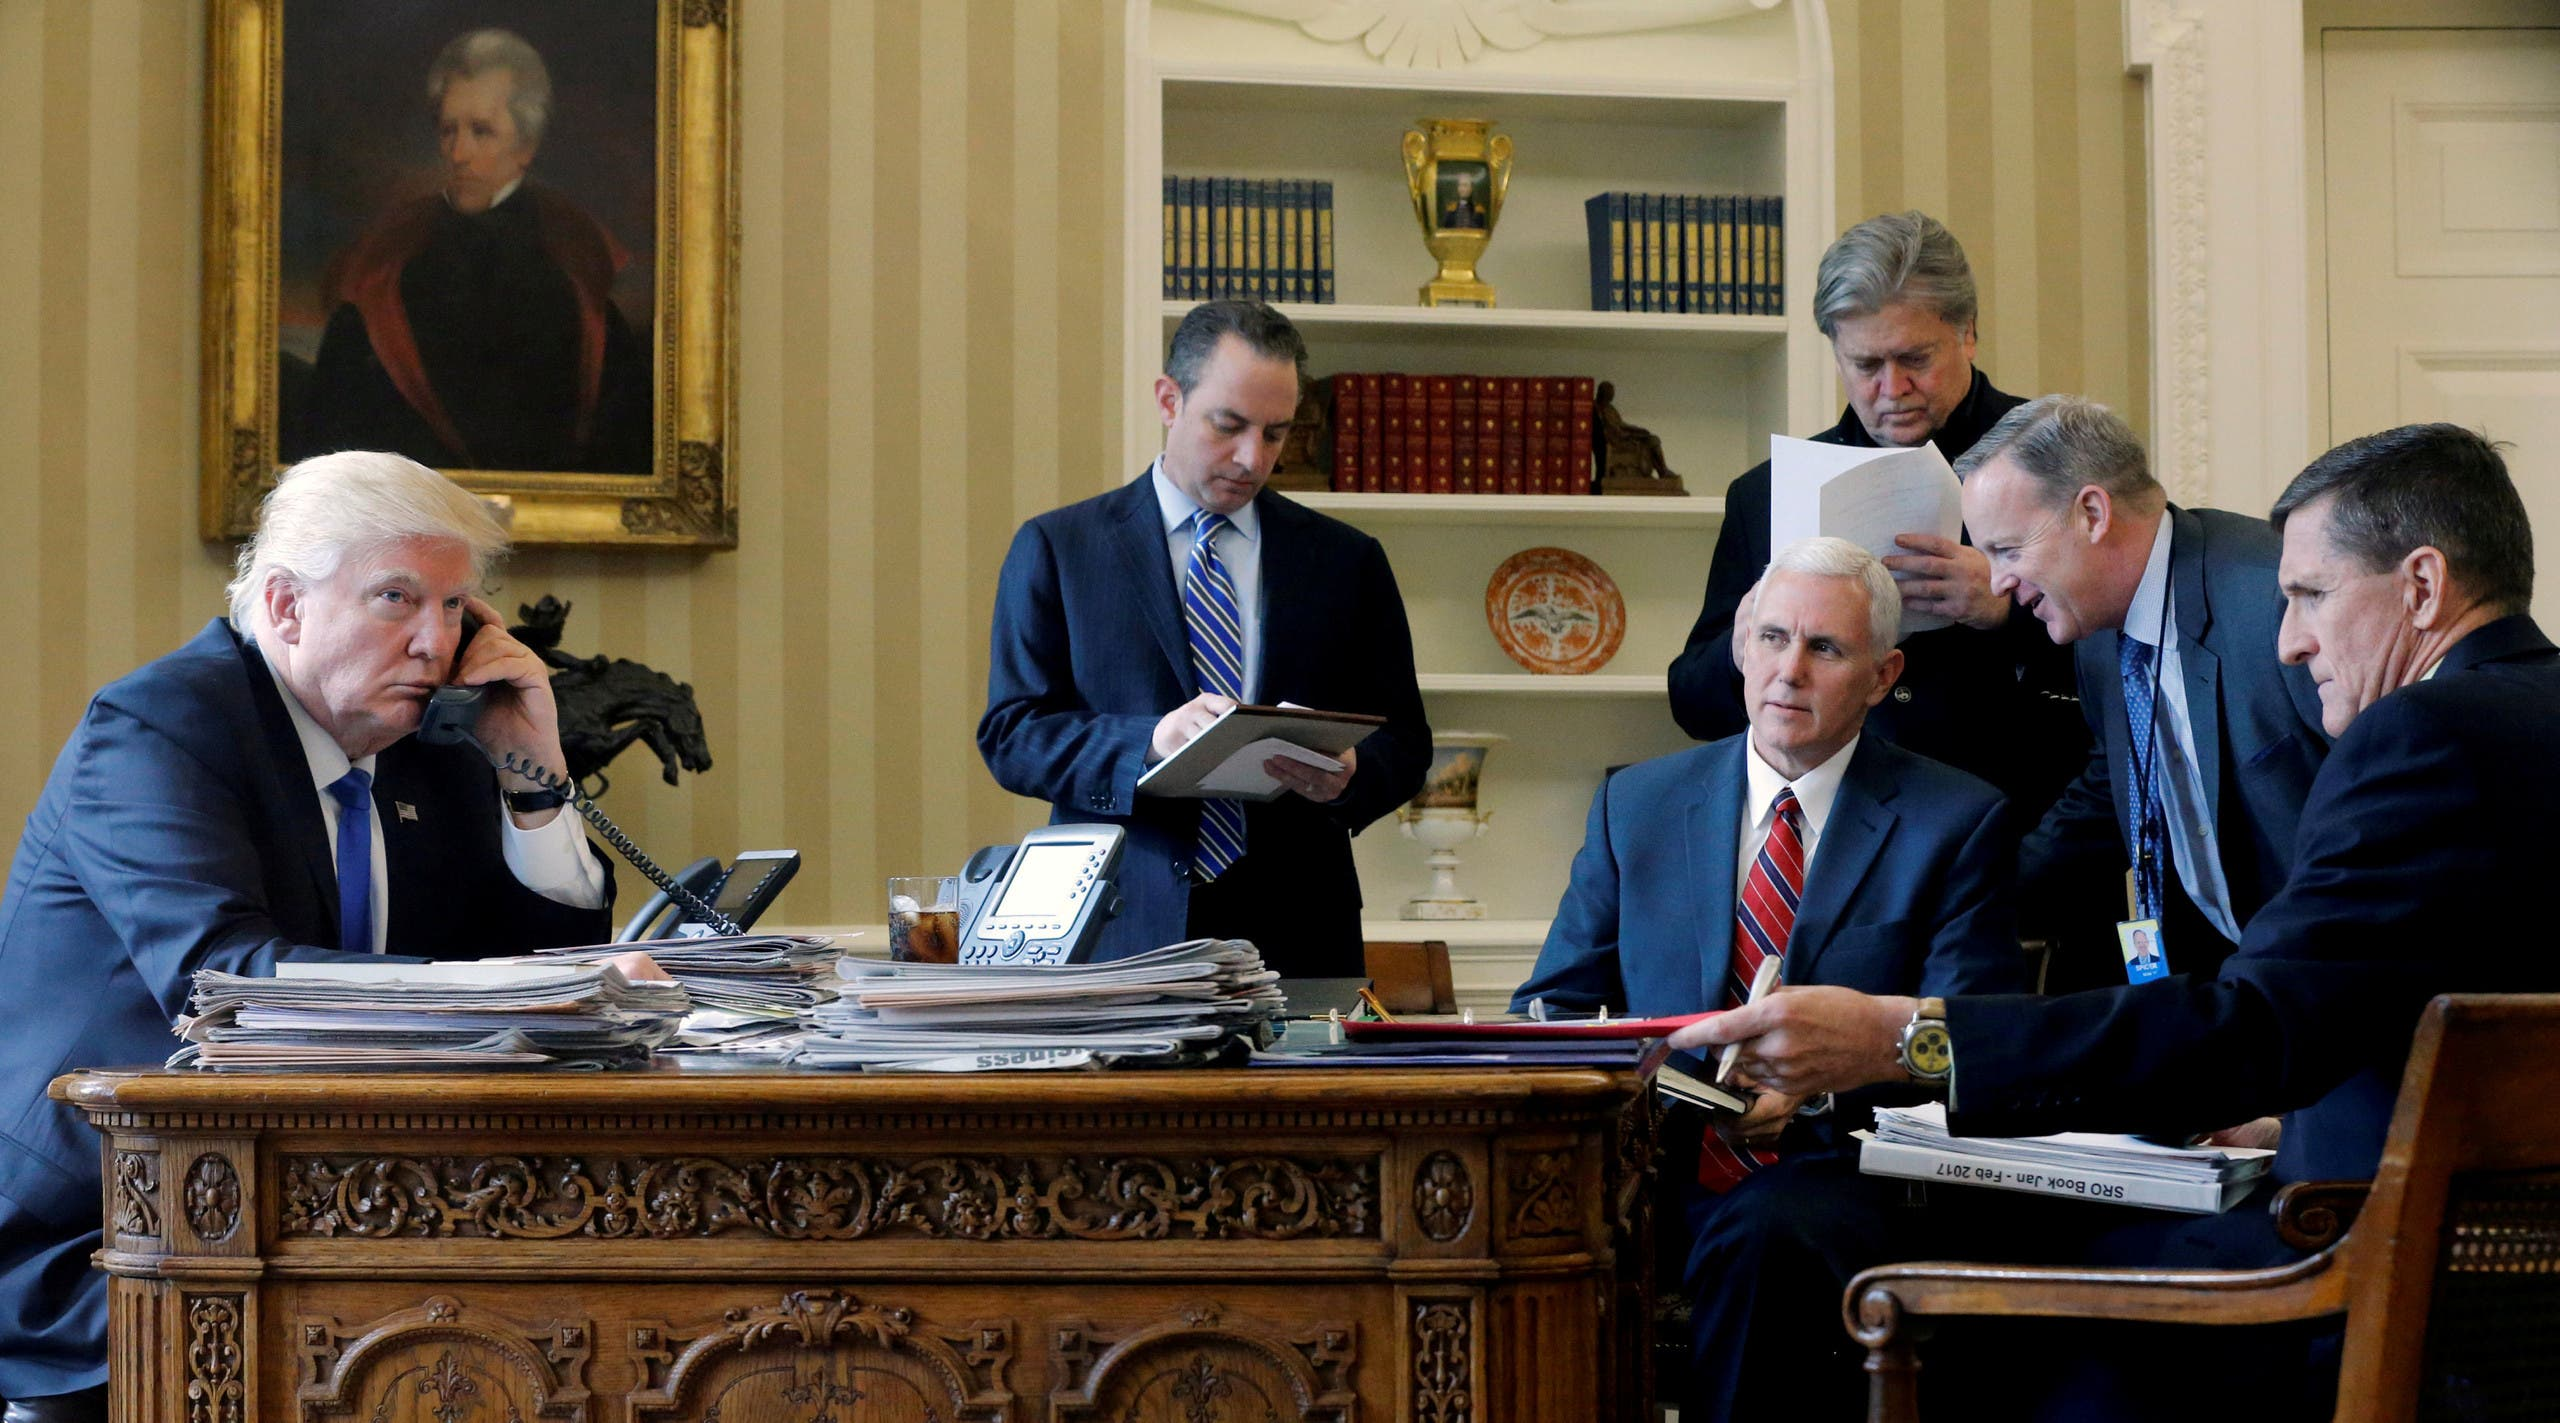 U.S. President Donald Trump (L-R), joined by Chief of Staff Reince Priebus, Vice President Mike Pence, senior advisor Steve Bannon, Communications Director Sean Spicer and National Security Advisor Michael Flynn, speaks by phone with Russia's President Vladimir Putin in the Oval Office at the White House in Washington, U.S. January 28, 2017